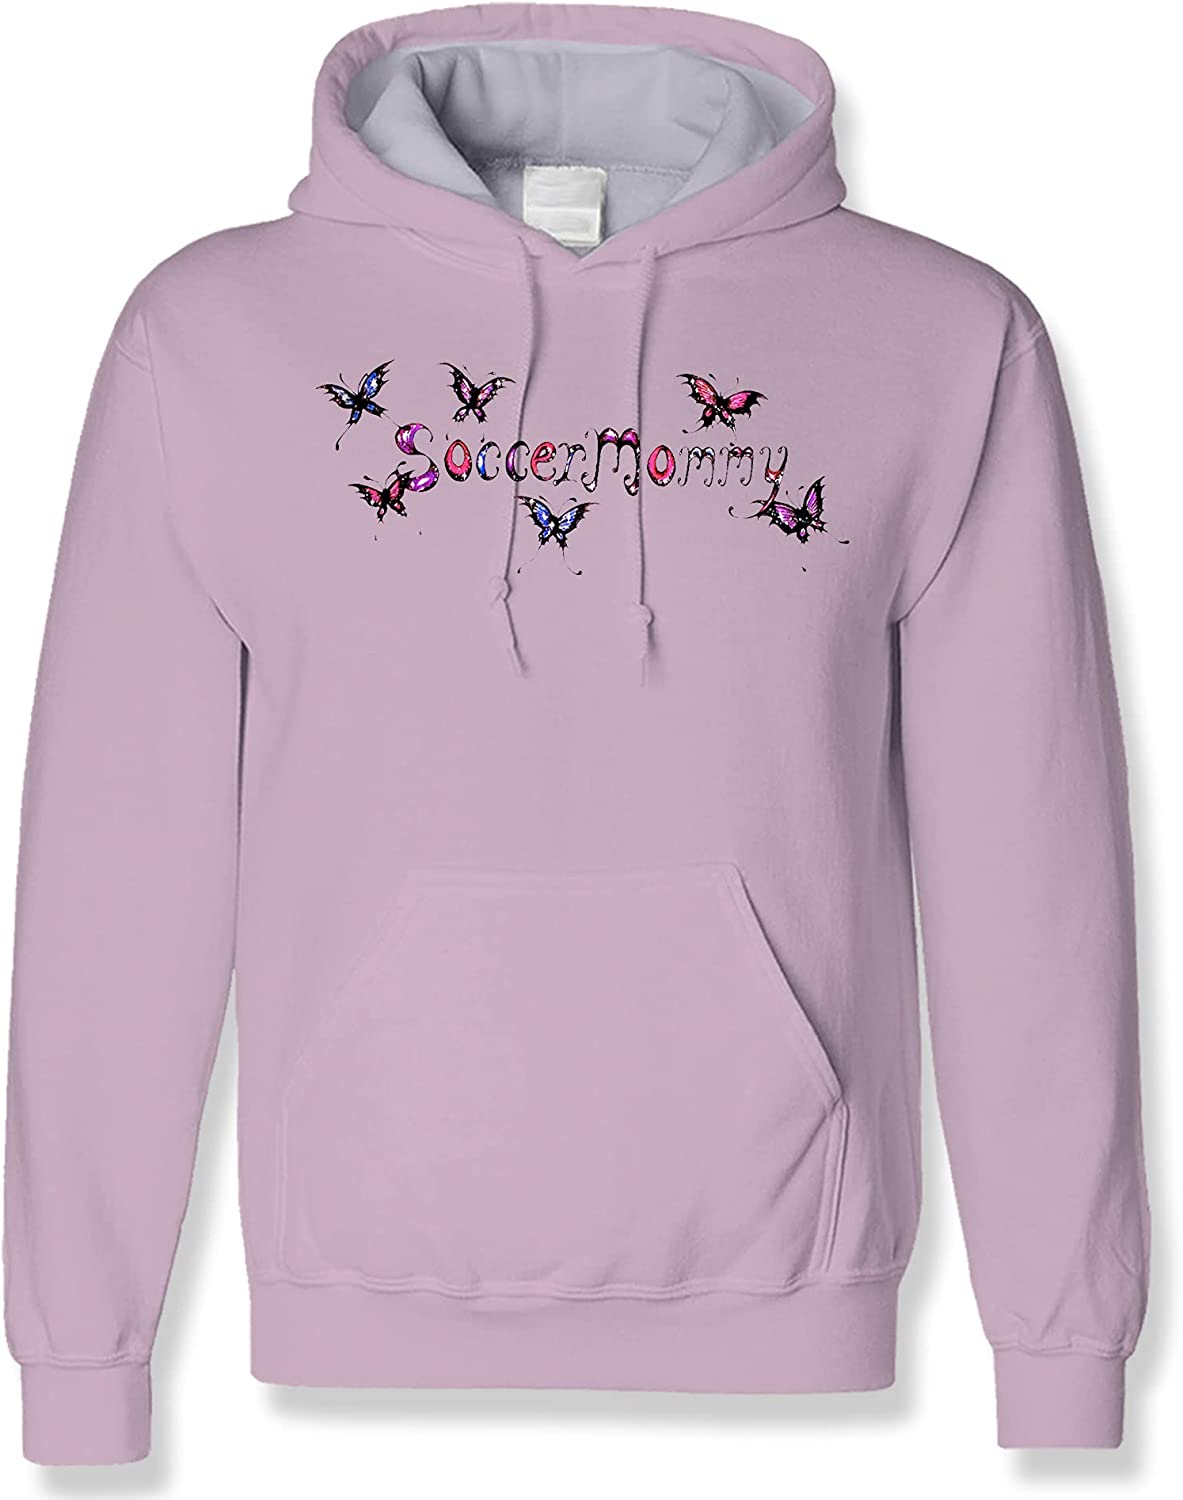 Soccer Mommy Merch Butterflies T-shirt S Long Sale Tampa Mall Special Price Sleeve - Crewneck